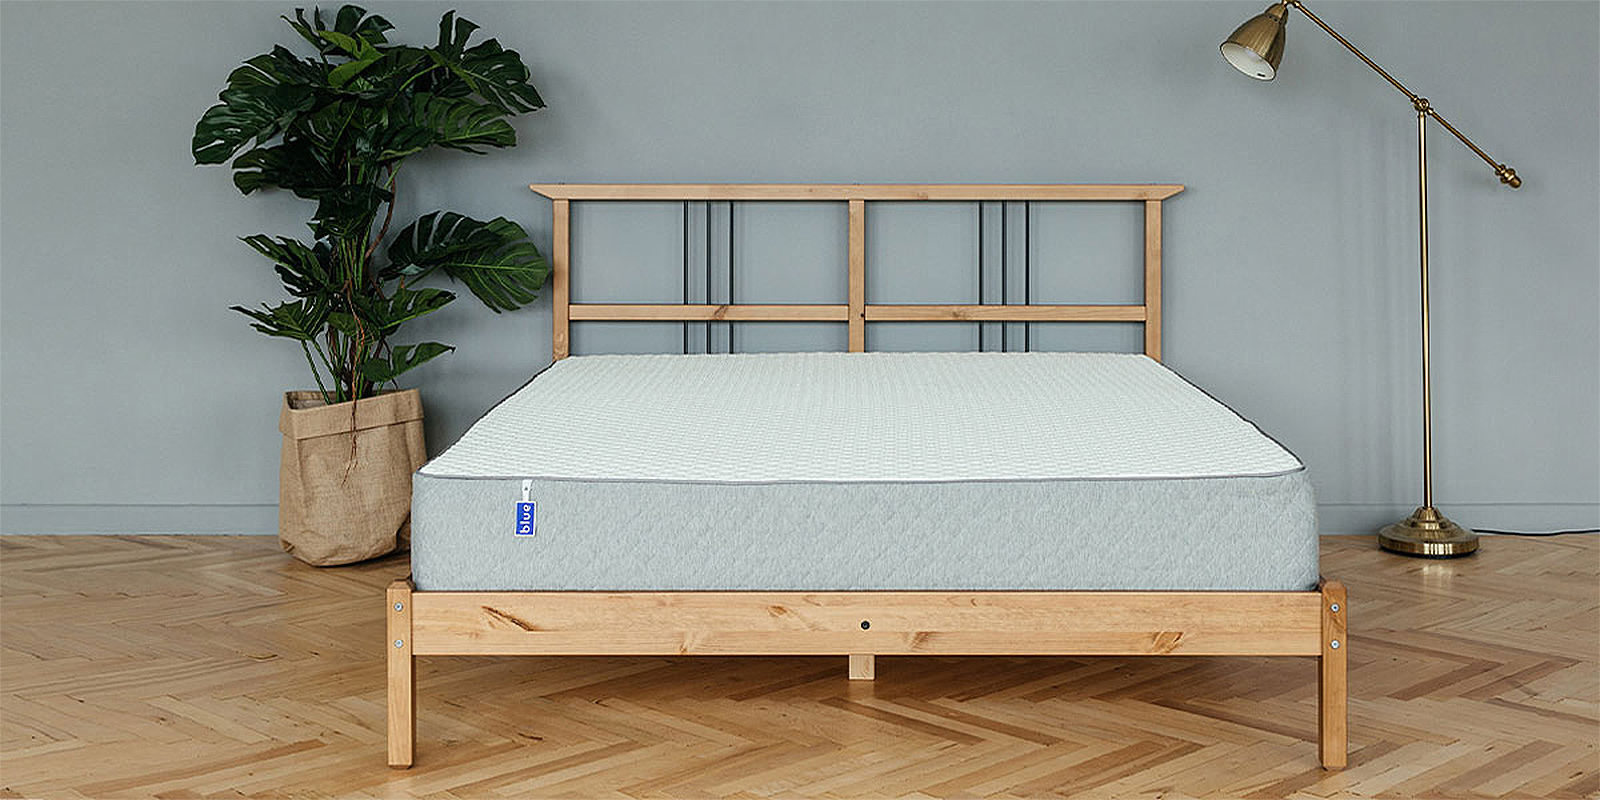 Матрас Blue Sleep 90х200